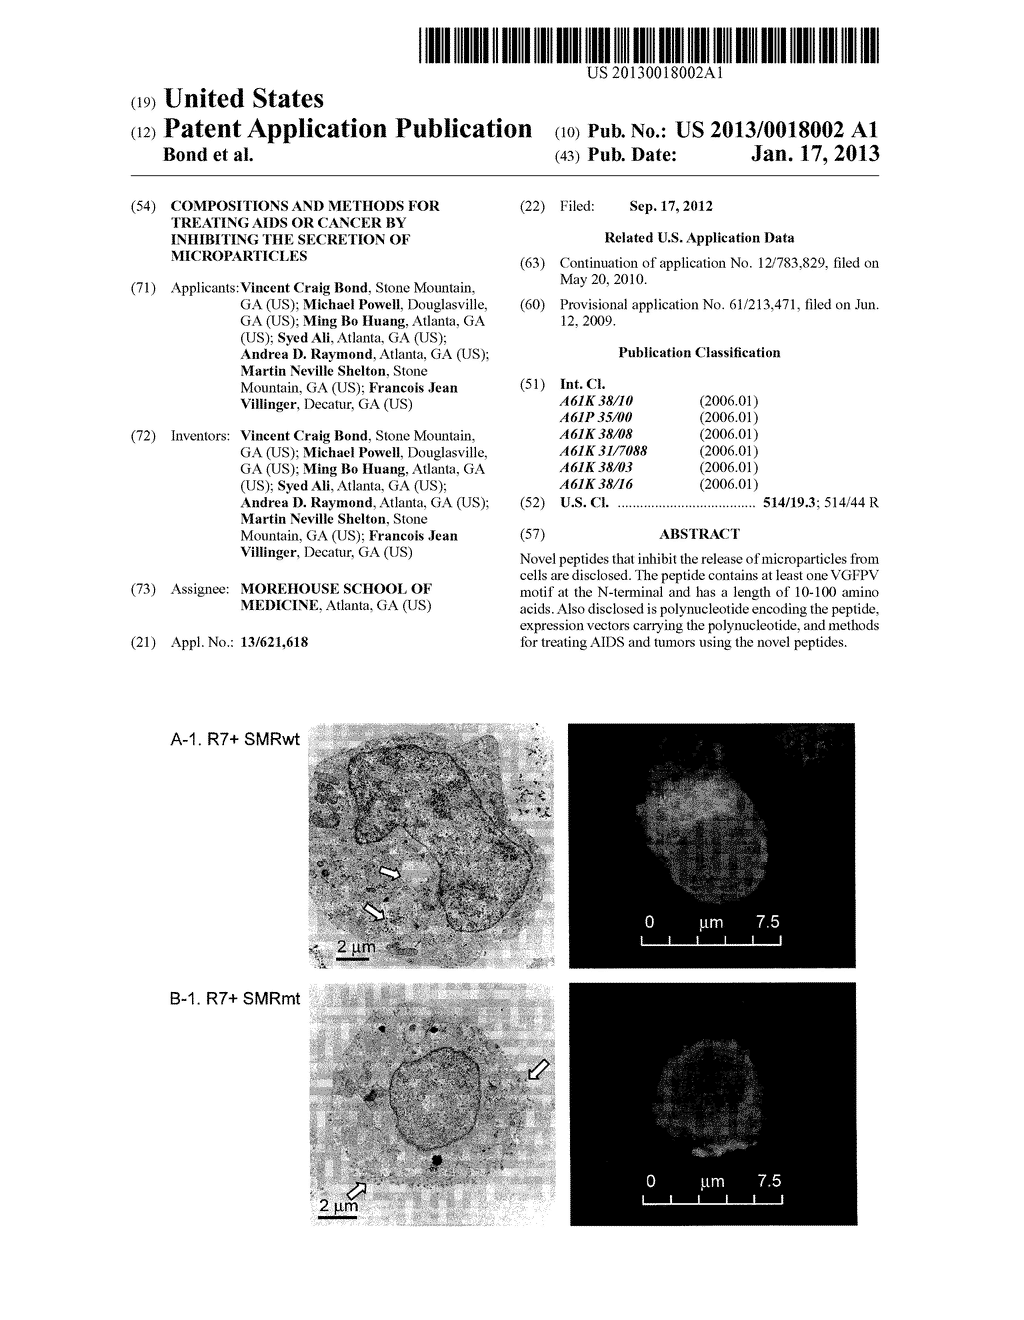 COMPOSITIONS AND METHODS FOR TREATING AIDS OR CANCER BY INHIBITING THE     SECRETION OF MICROPARTICLES - diagram, schematic, and image 01